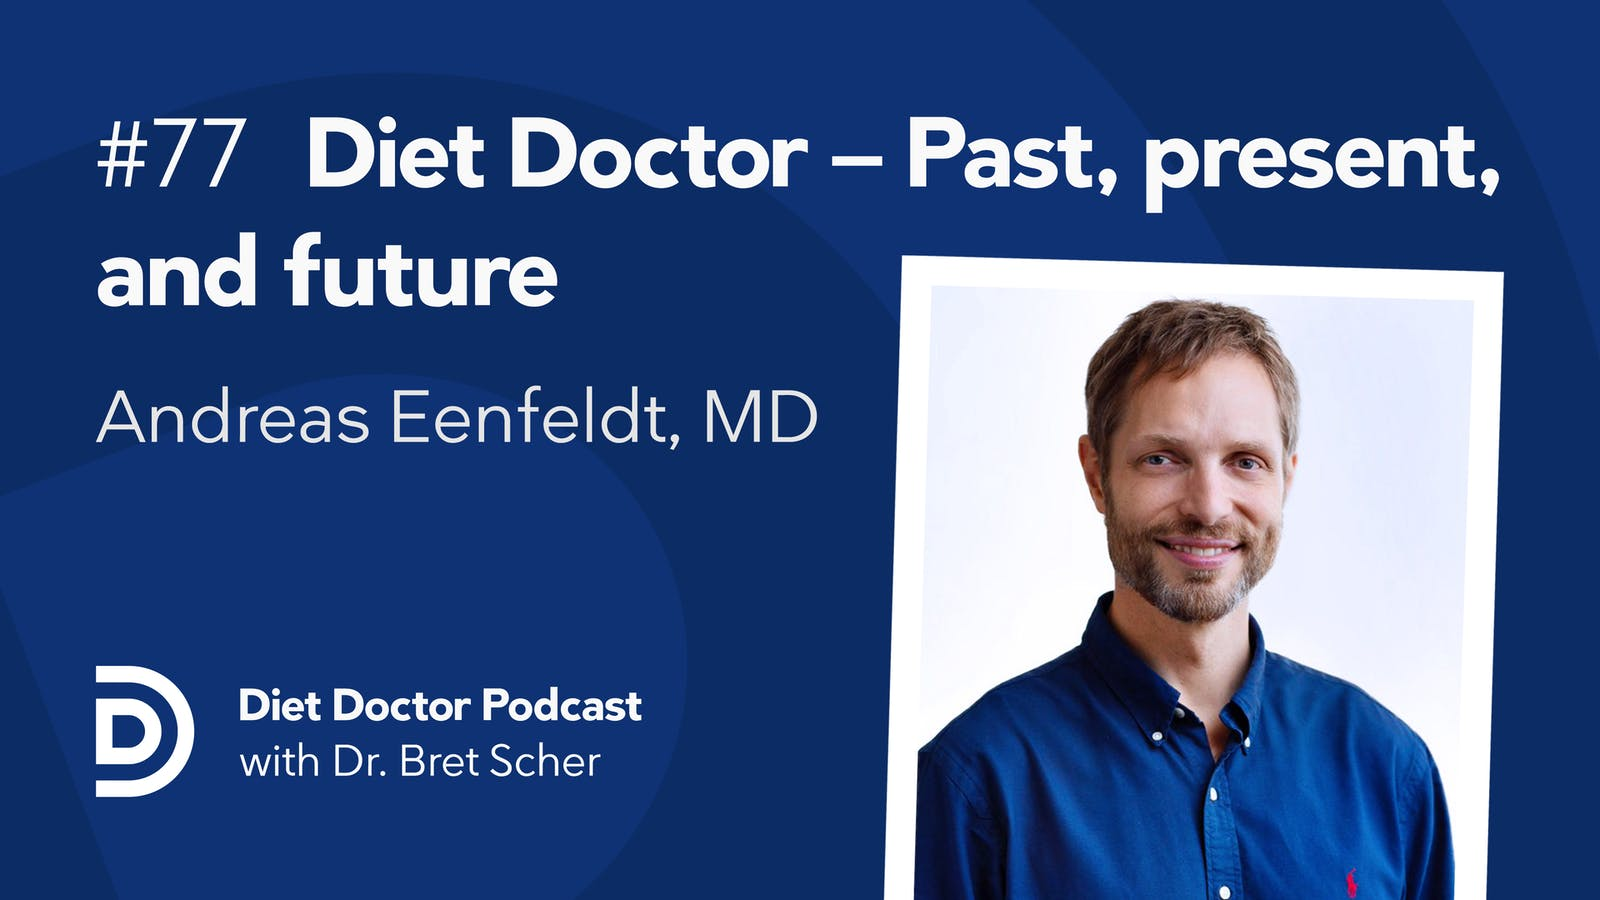 Diet Doctor Podcast #77 — Past, present, and future – Diet Doctor